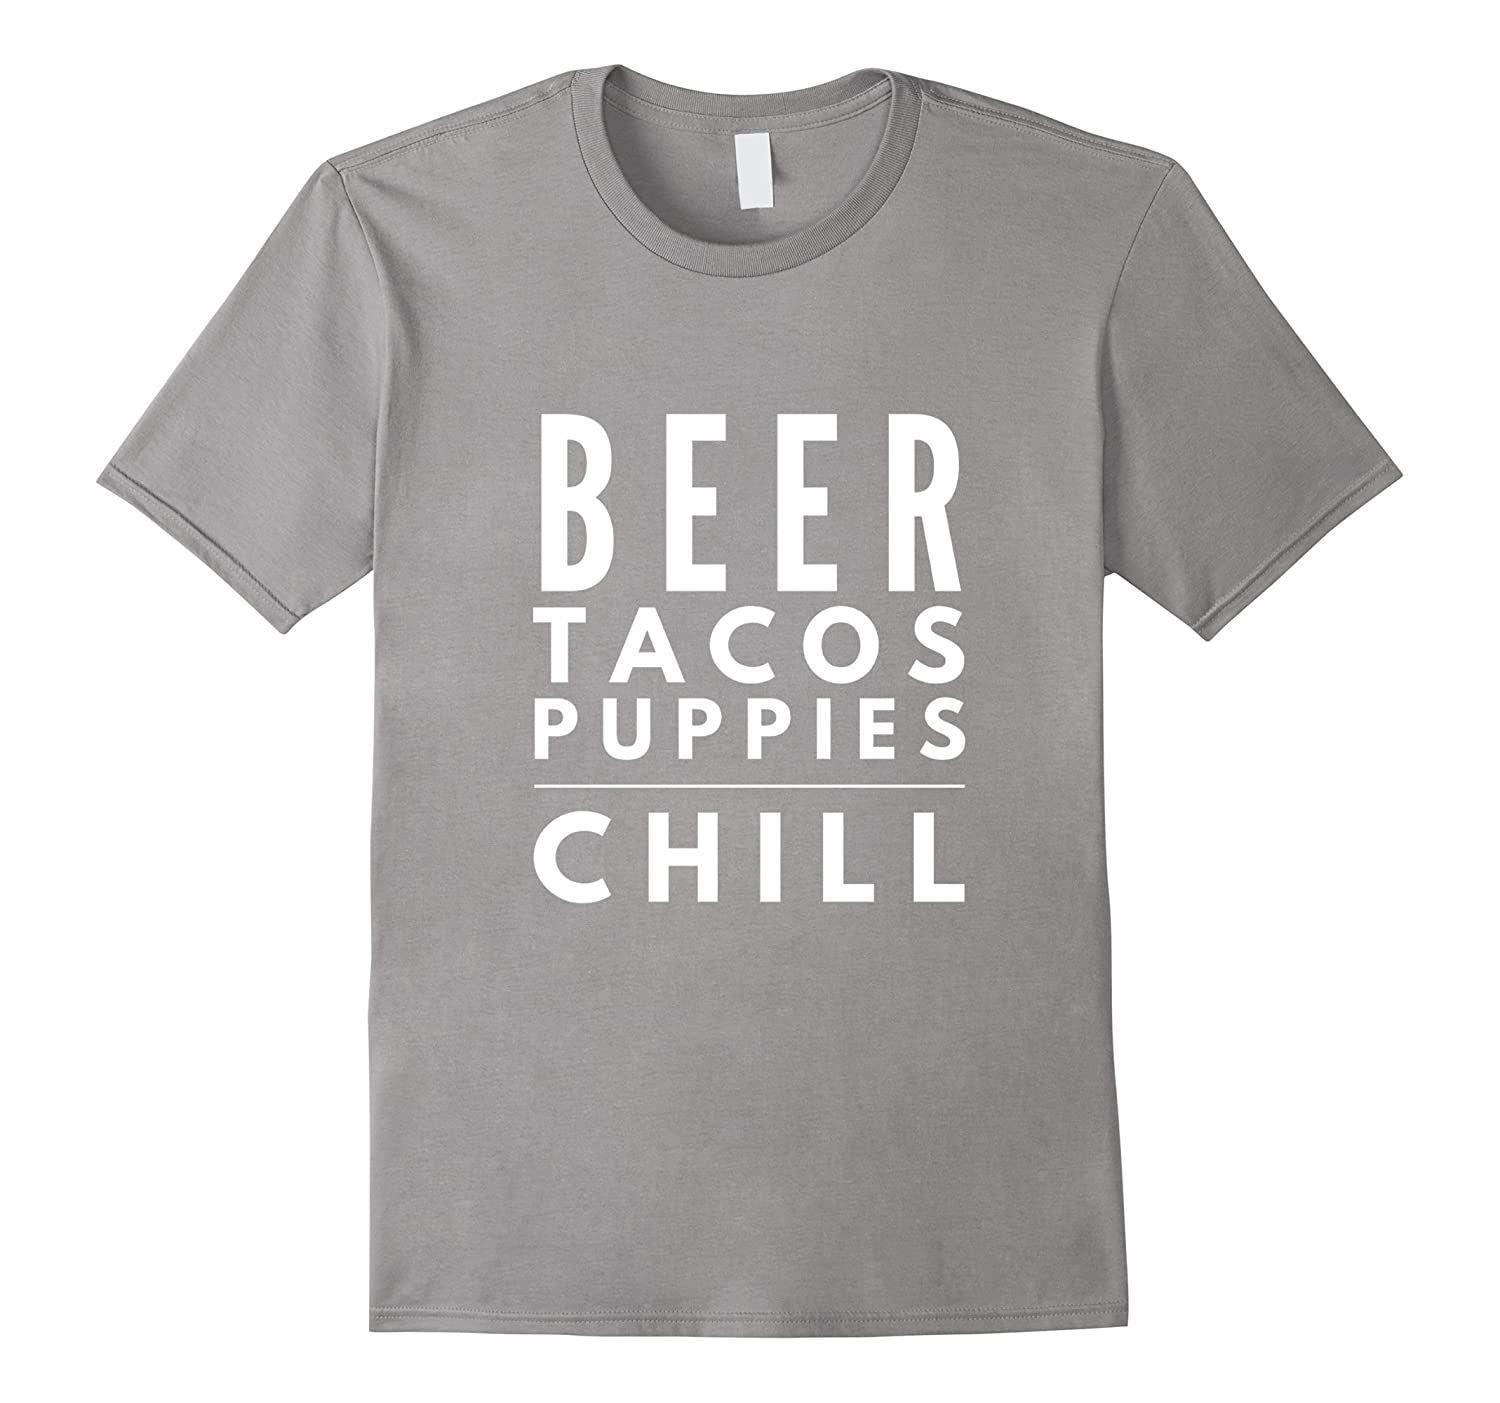 Beer Tacos Puppies Chill awesome we love taco funny t-shirt